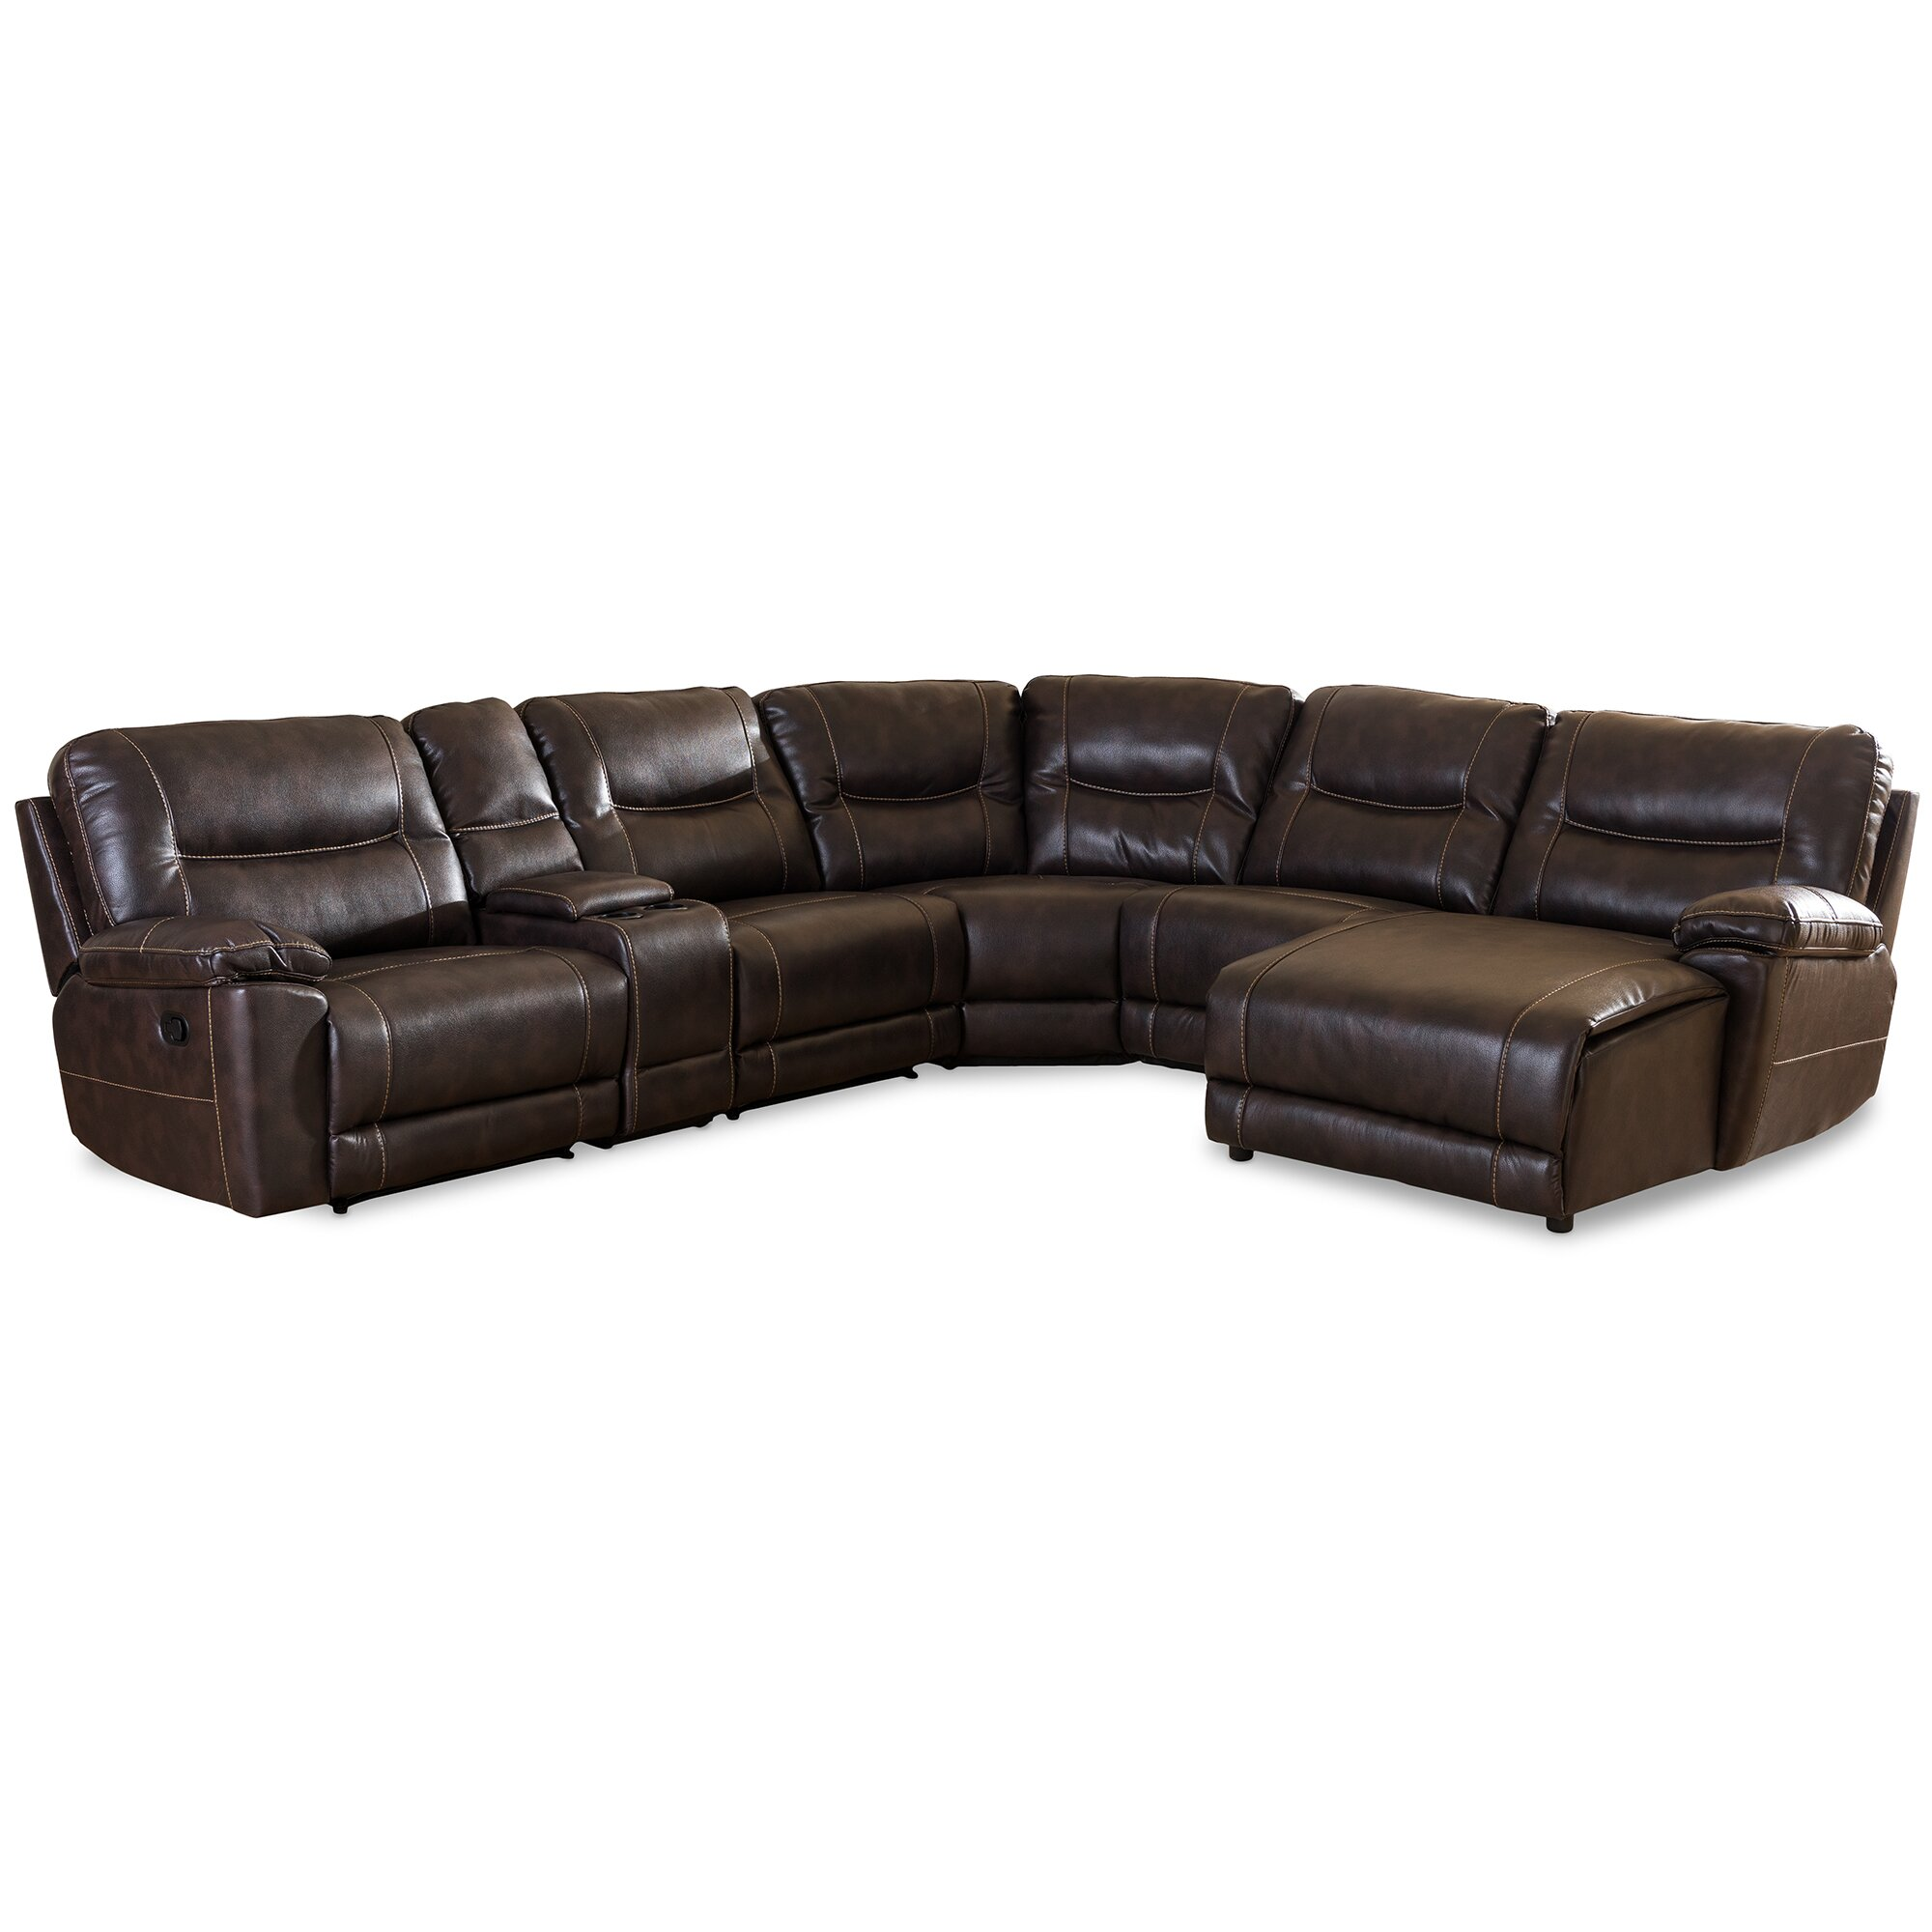 Contemporary Sectional: Wholesale Interiors Baxton Studio Sectional